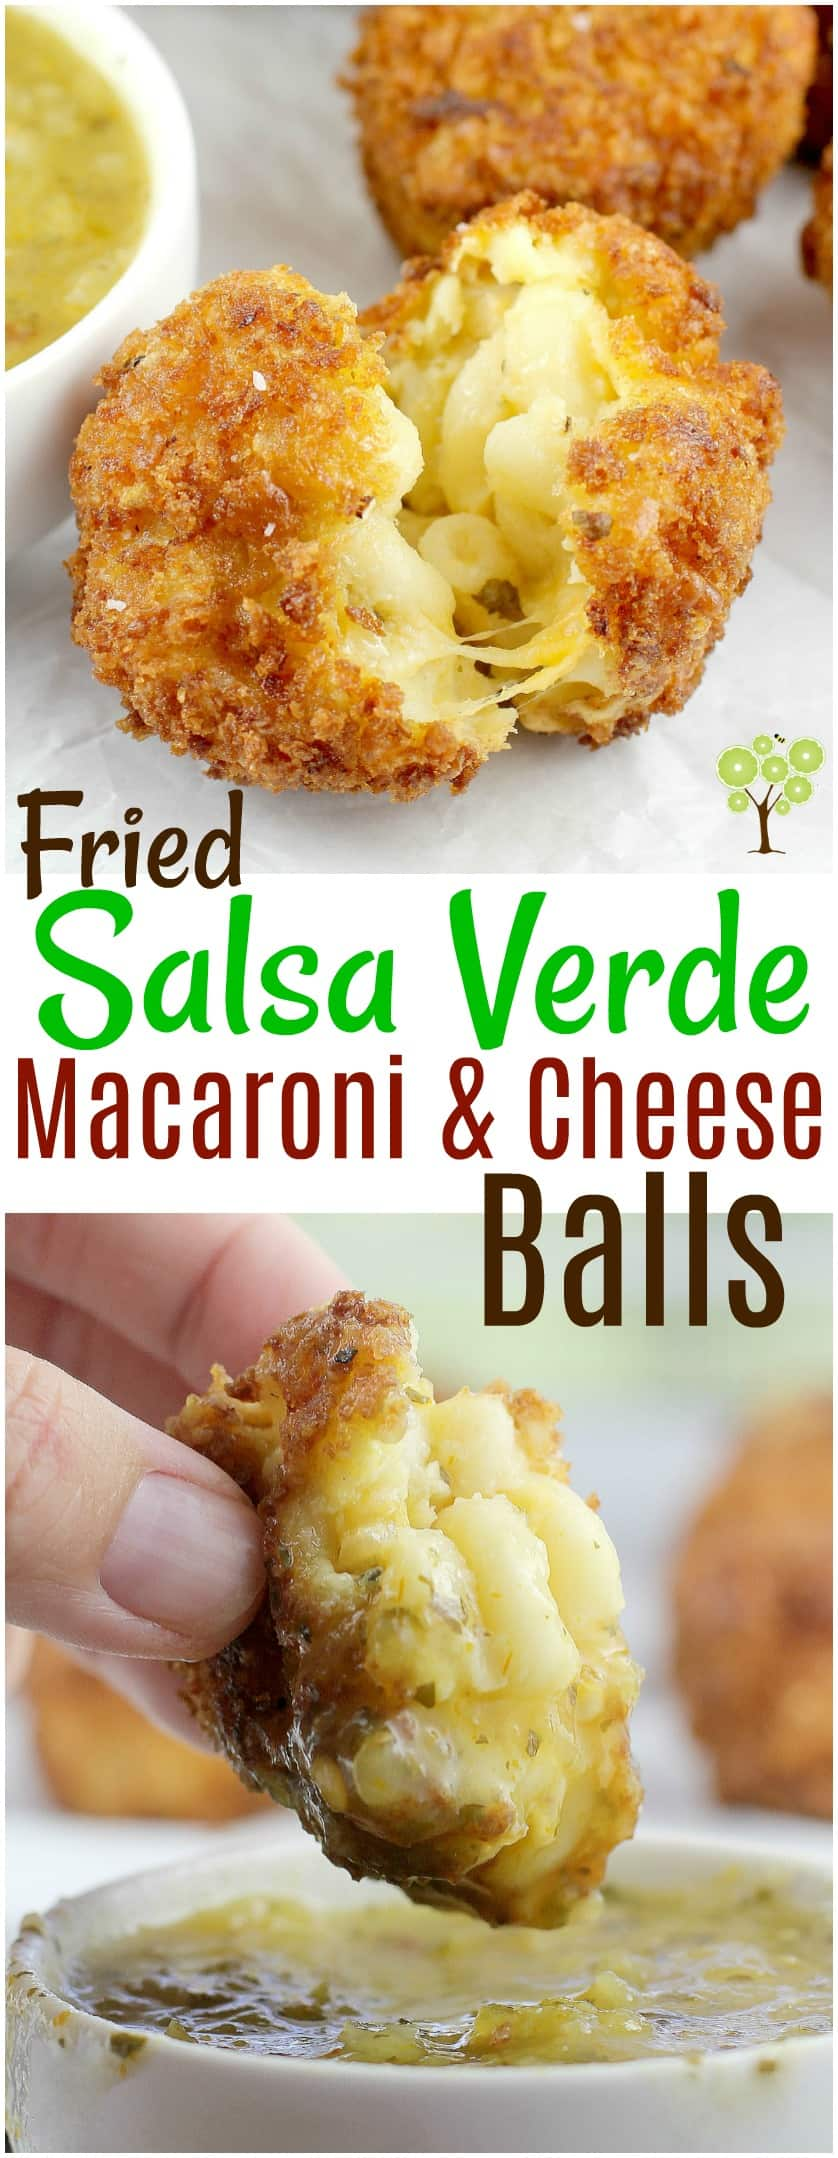 Fried Salsa Verde Macaroni and Cheese Balls #MakeGameTimeSaucy #ad